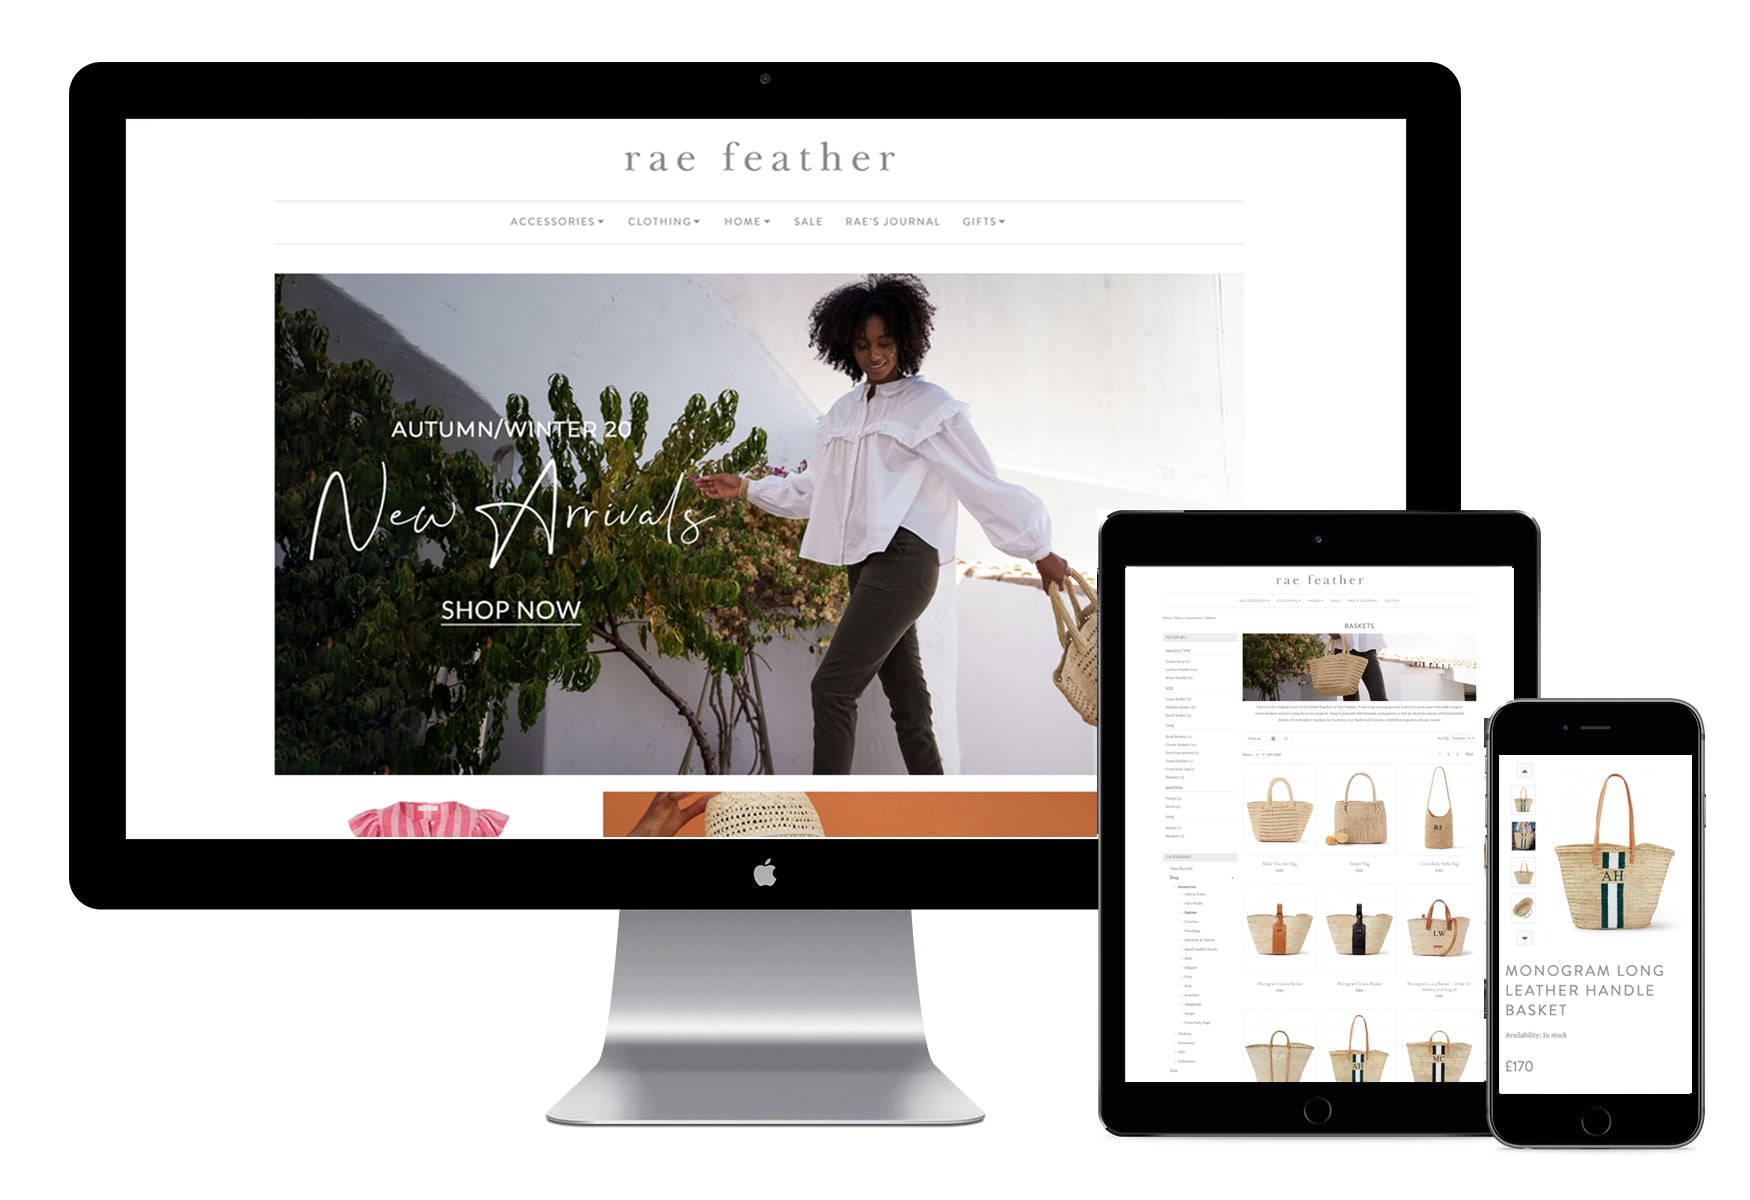 Rae Feather Desktop, Tablet and Mobile website design and development